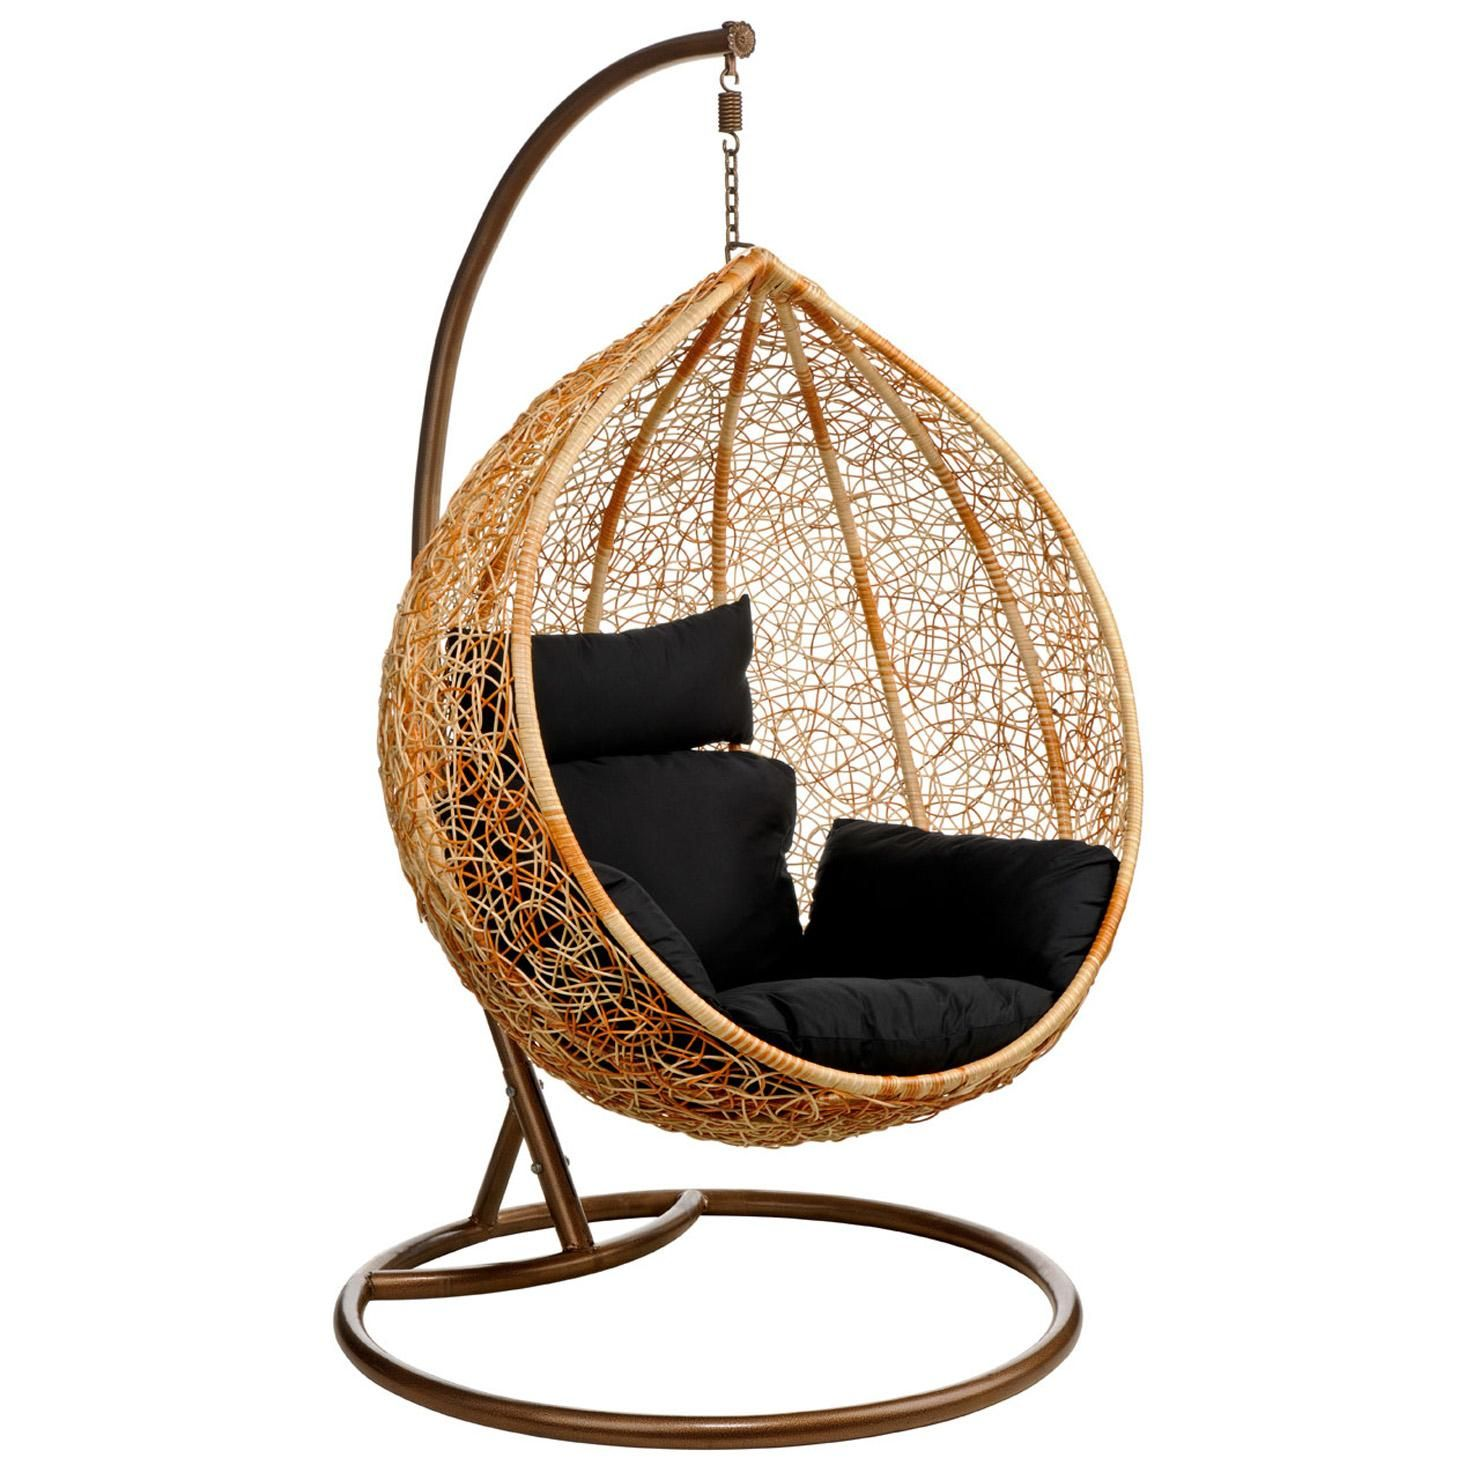 Hanging chair home and hearth pinterest hanging chair and hearths